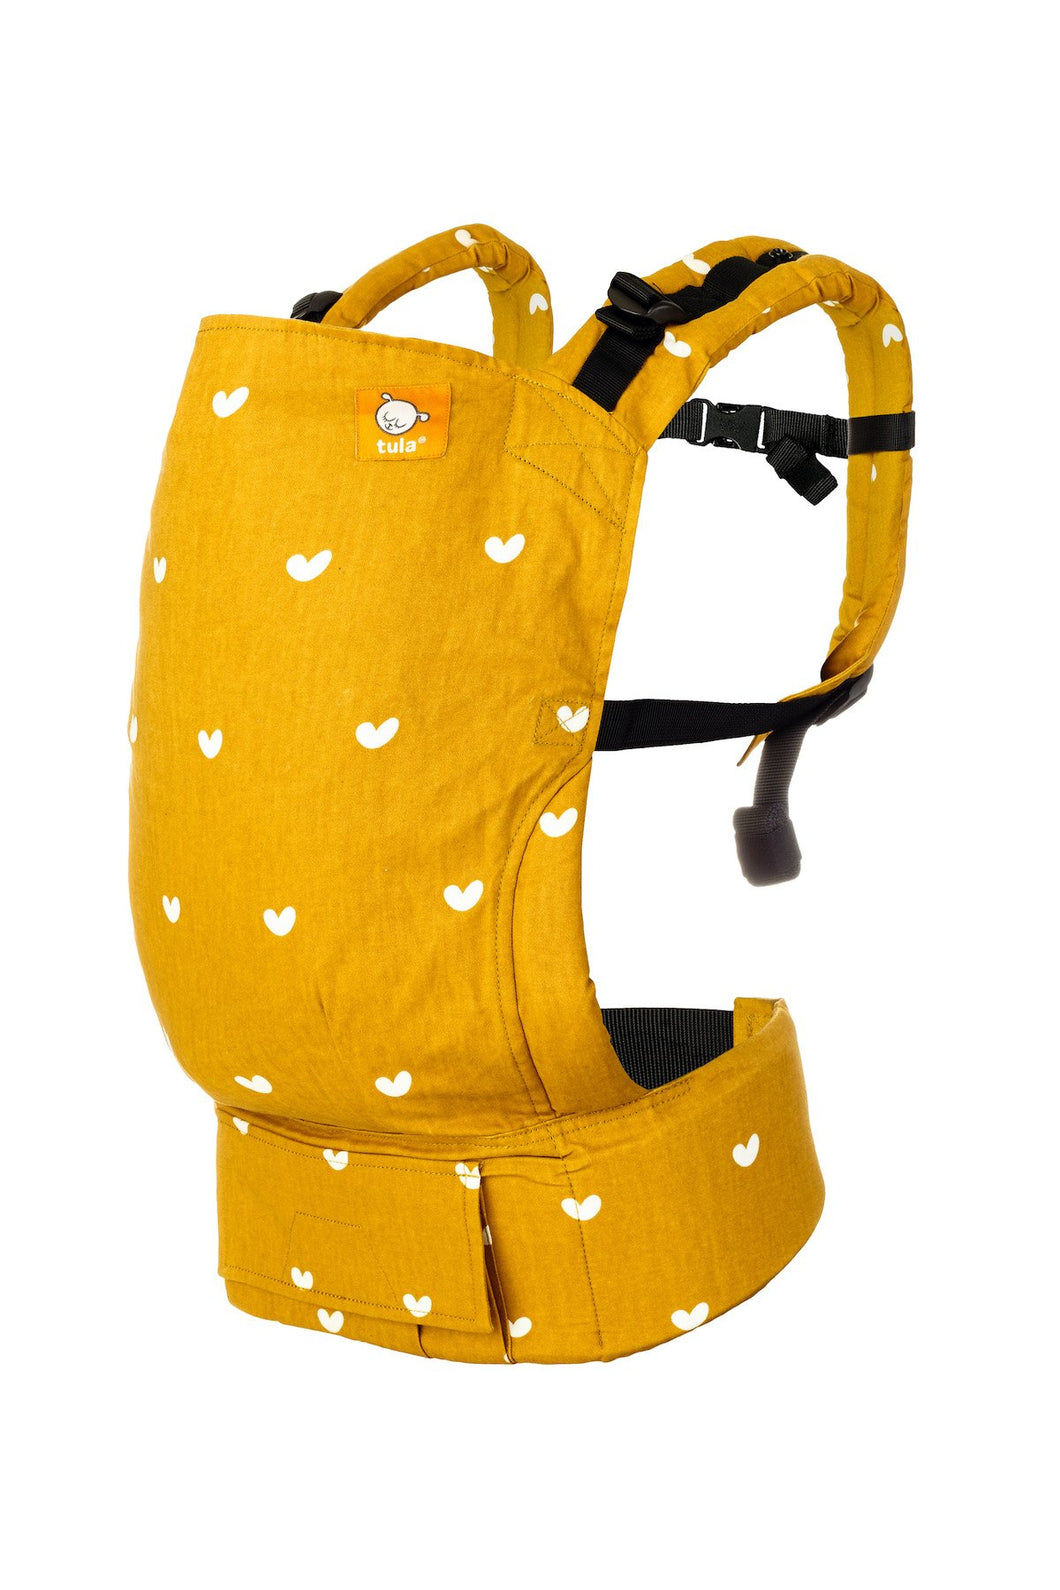 Play - Tula Toddler Carrier